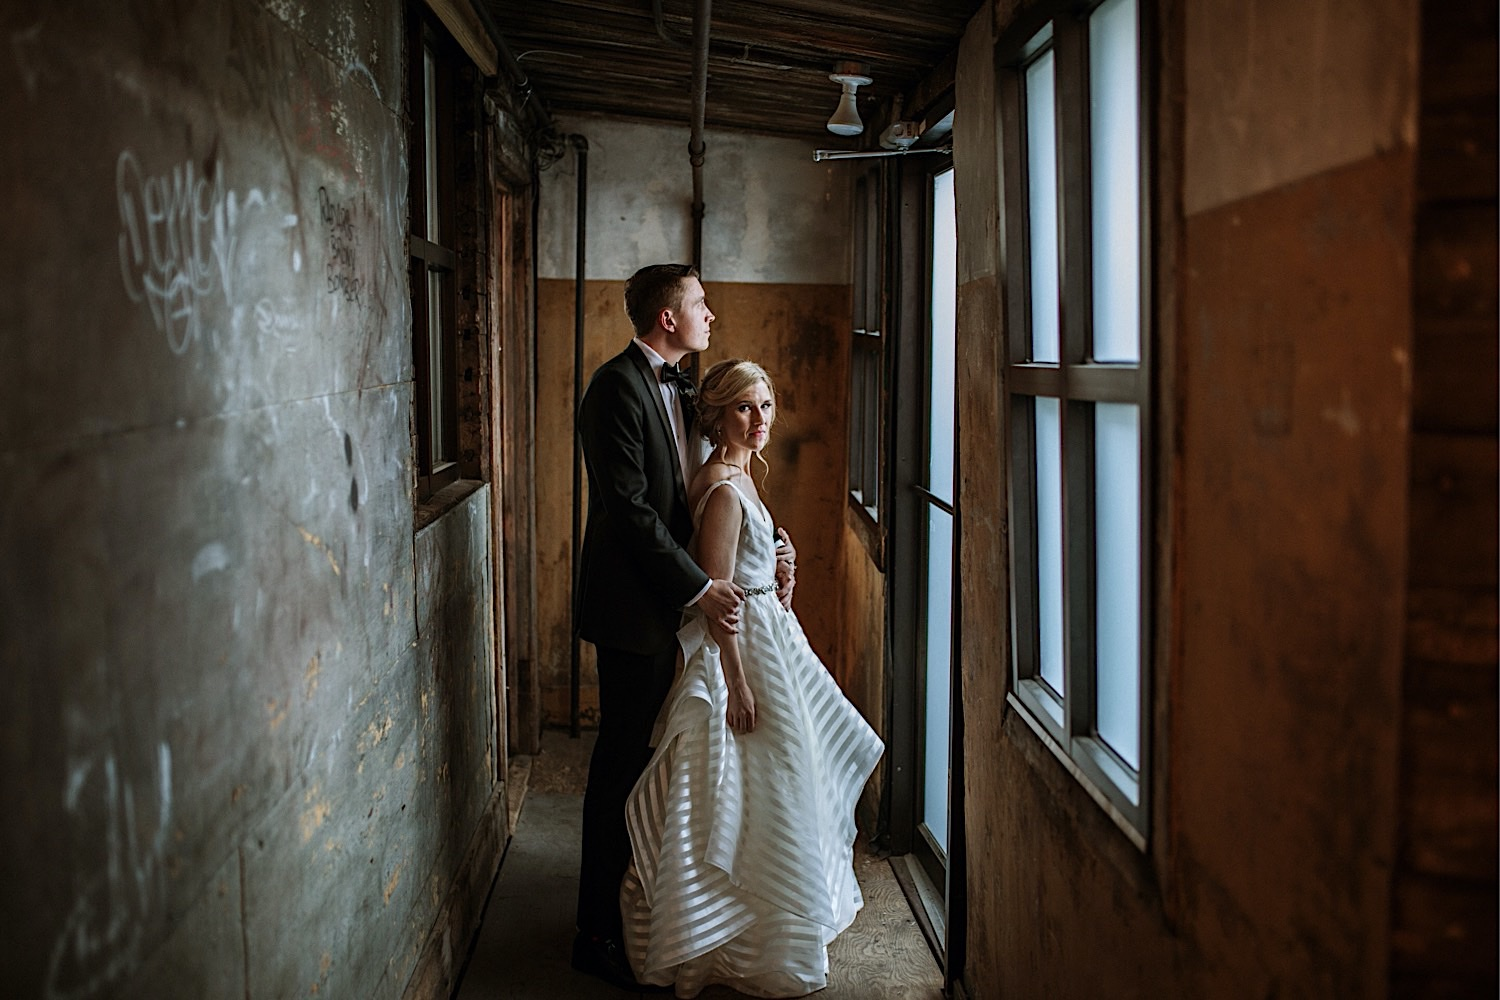 Wedding Photography at Greenpoint Loft - Bride looks at camera as groom holds her from behind